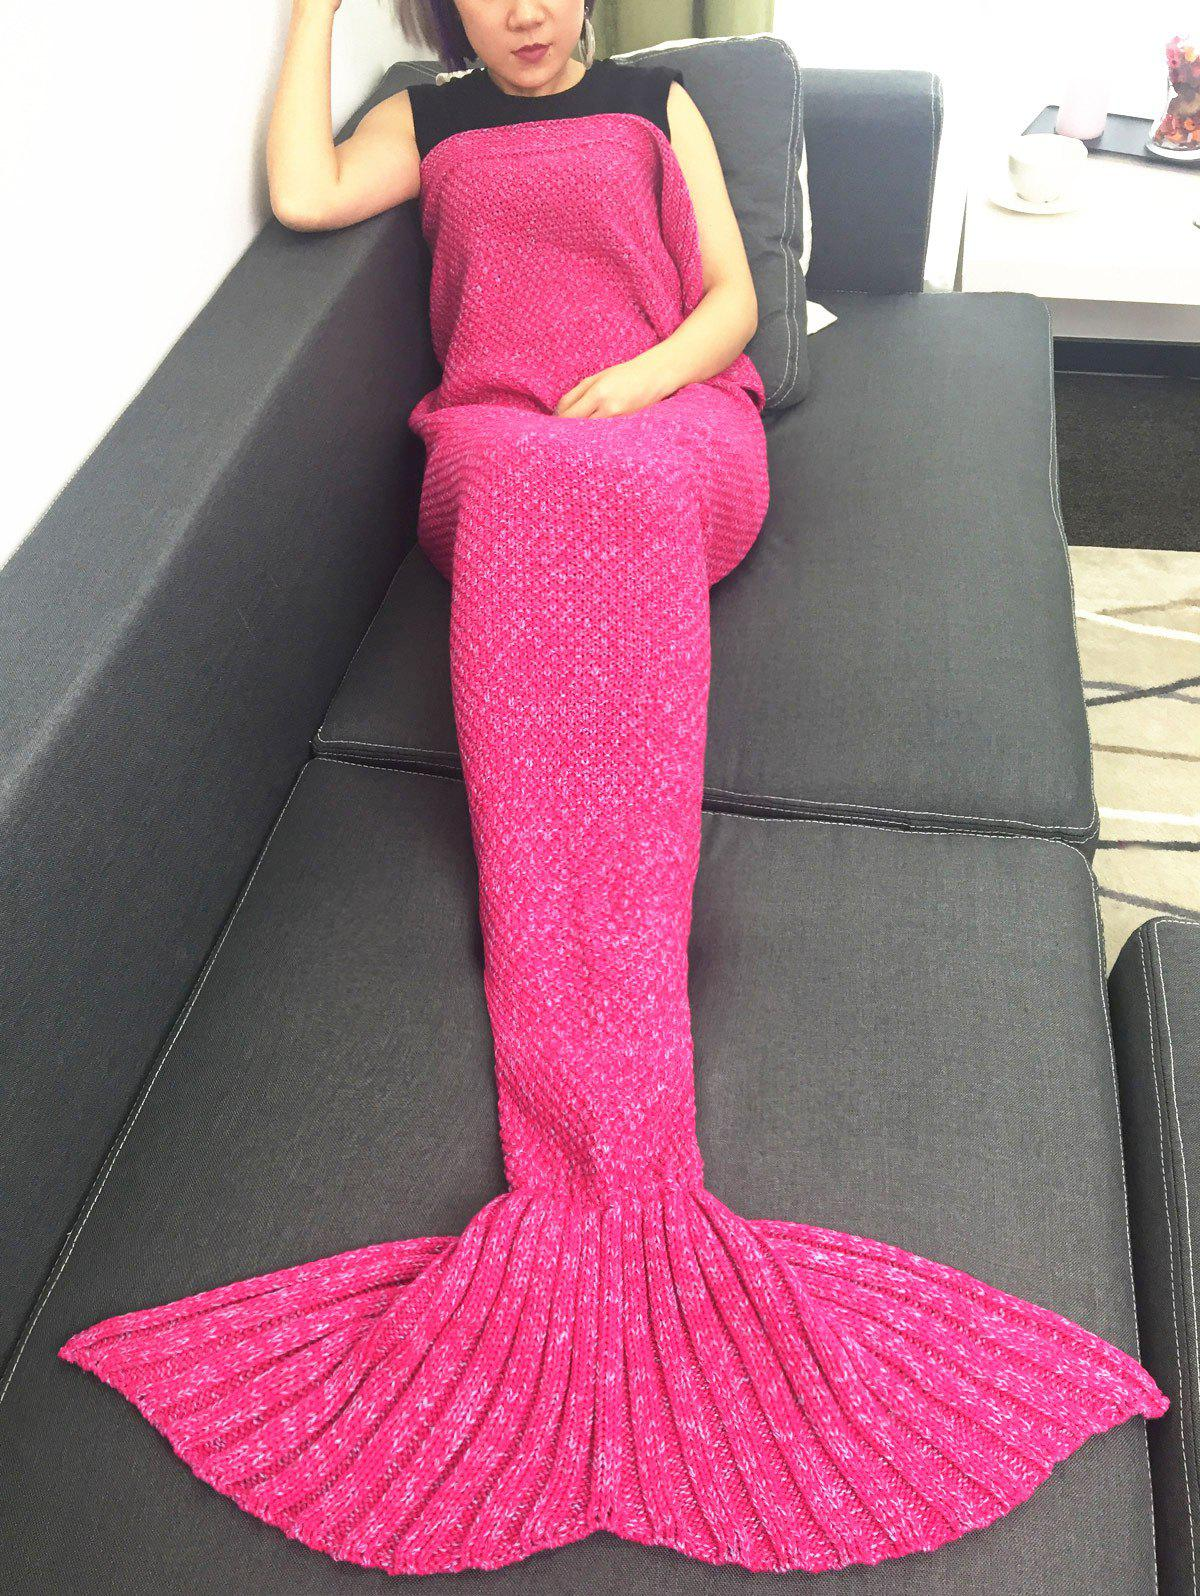 High Quality Crochet Knitted Mermaid Tail BlanketHome<br><br><br>Size: W31.50INCH*L70.70INCH<br>Color: ROSE RED